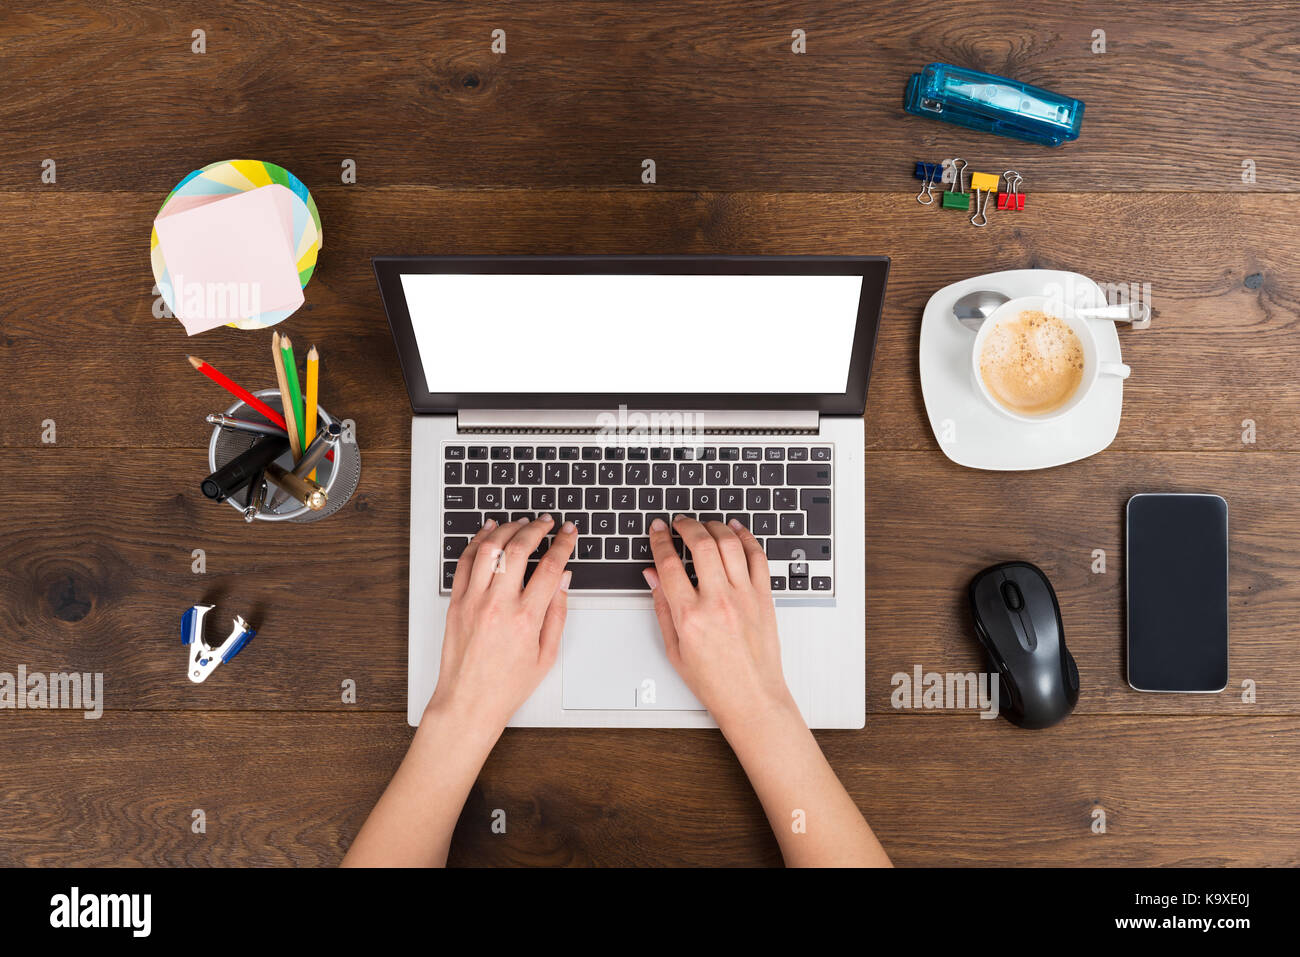 Close-up Of Person Hands Working On Laptop At Desk - Stock Image